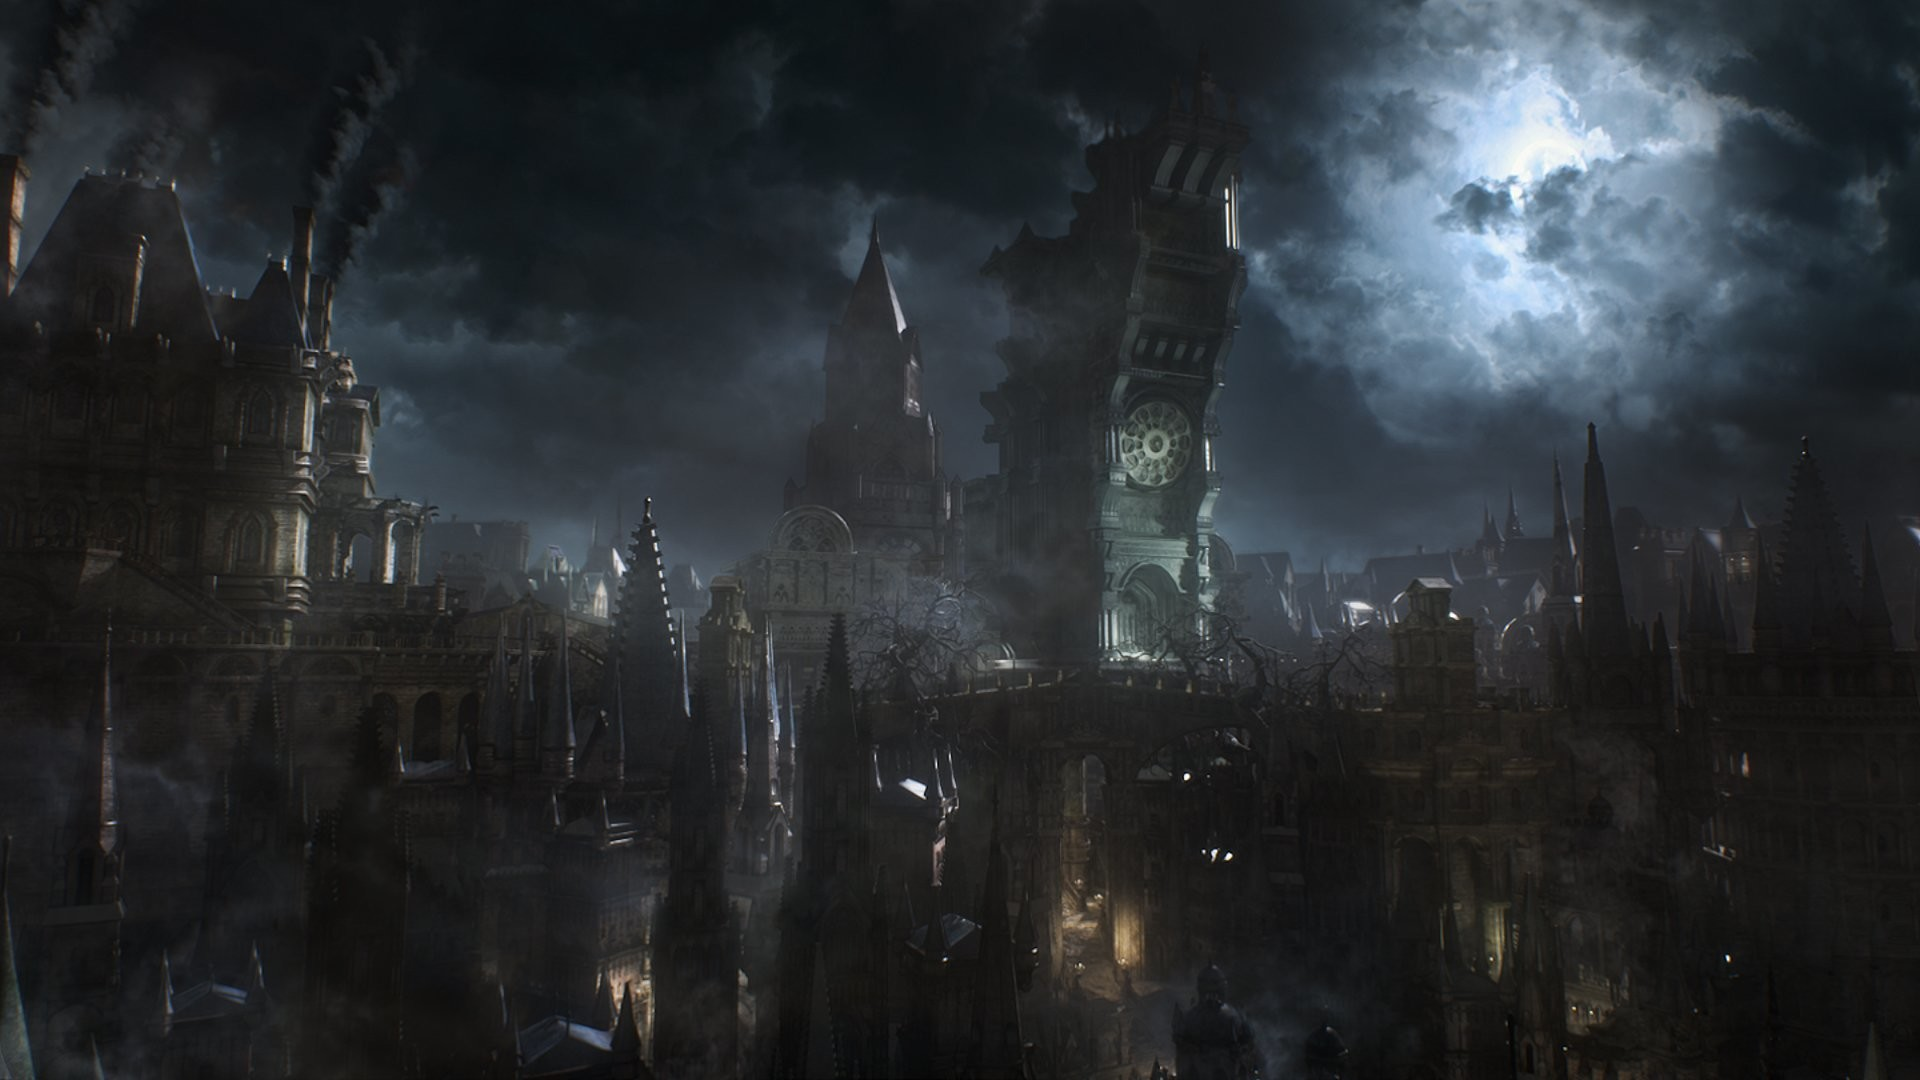 The Best Bloodborne Desktop Wallpaper 1920X1080 Images